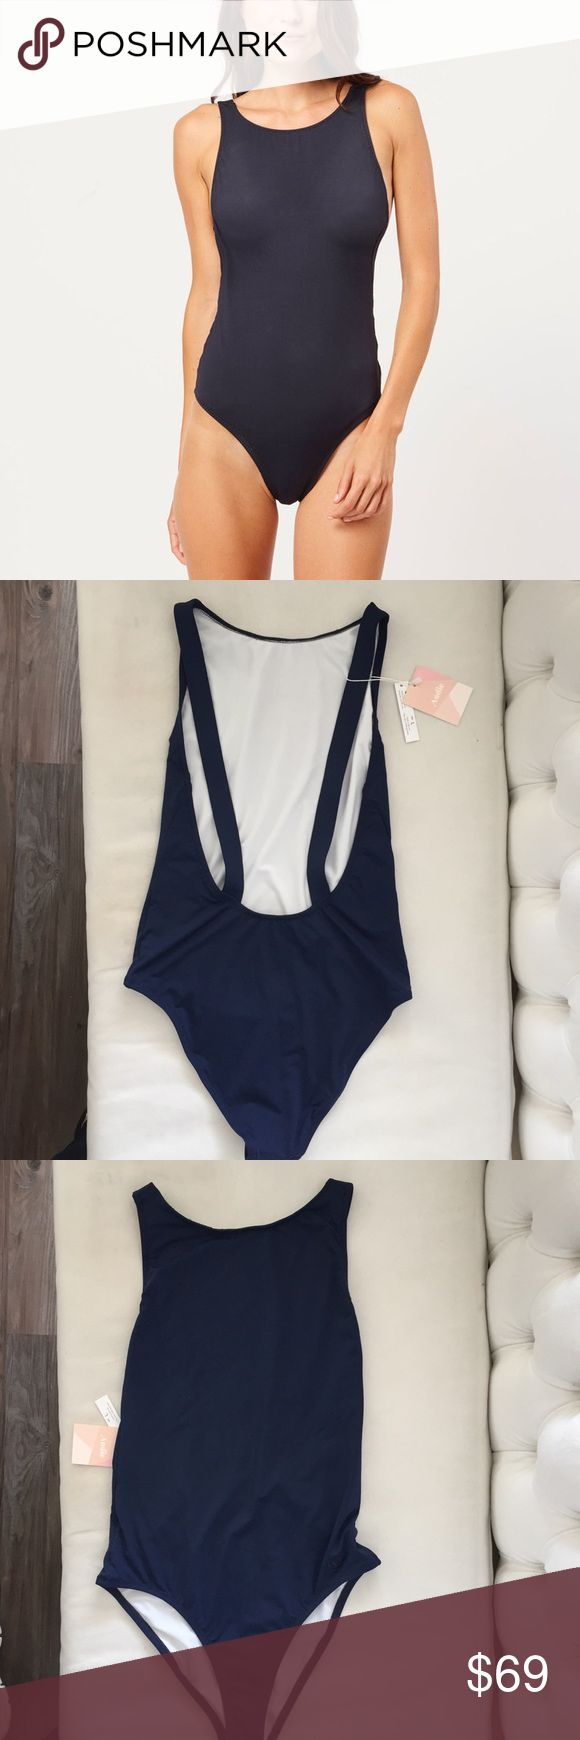 The Montauk - Navy One Piece swimsuit. Size Large. The Montauk - Navy One Piece swimsuit, size Large/8-10. brand new with tags and hygiene sticker. Retail current online -$125.00 A high boat neckline, low scoop back, this fan favorite is effortlessly chic. designed with a high-cut hip and light coverage at the back.  Fabric is milled in north carolina from a high-quality blend of 25% spandex and 75% nylon, with a lycra-polyester jersey lining. Andie Swim One Pieces